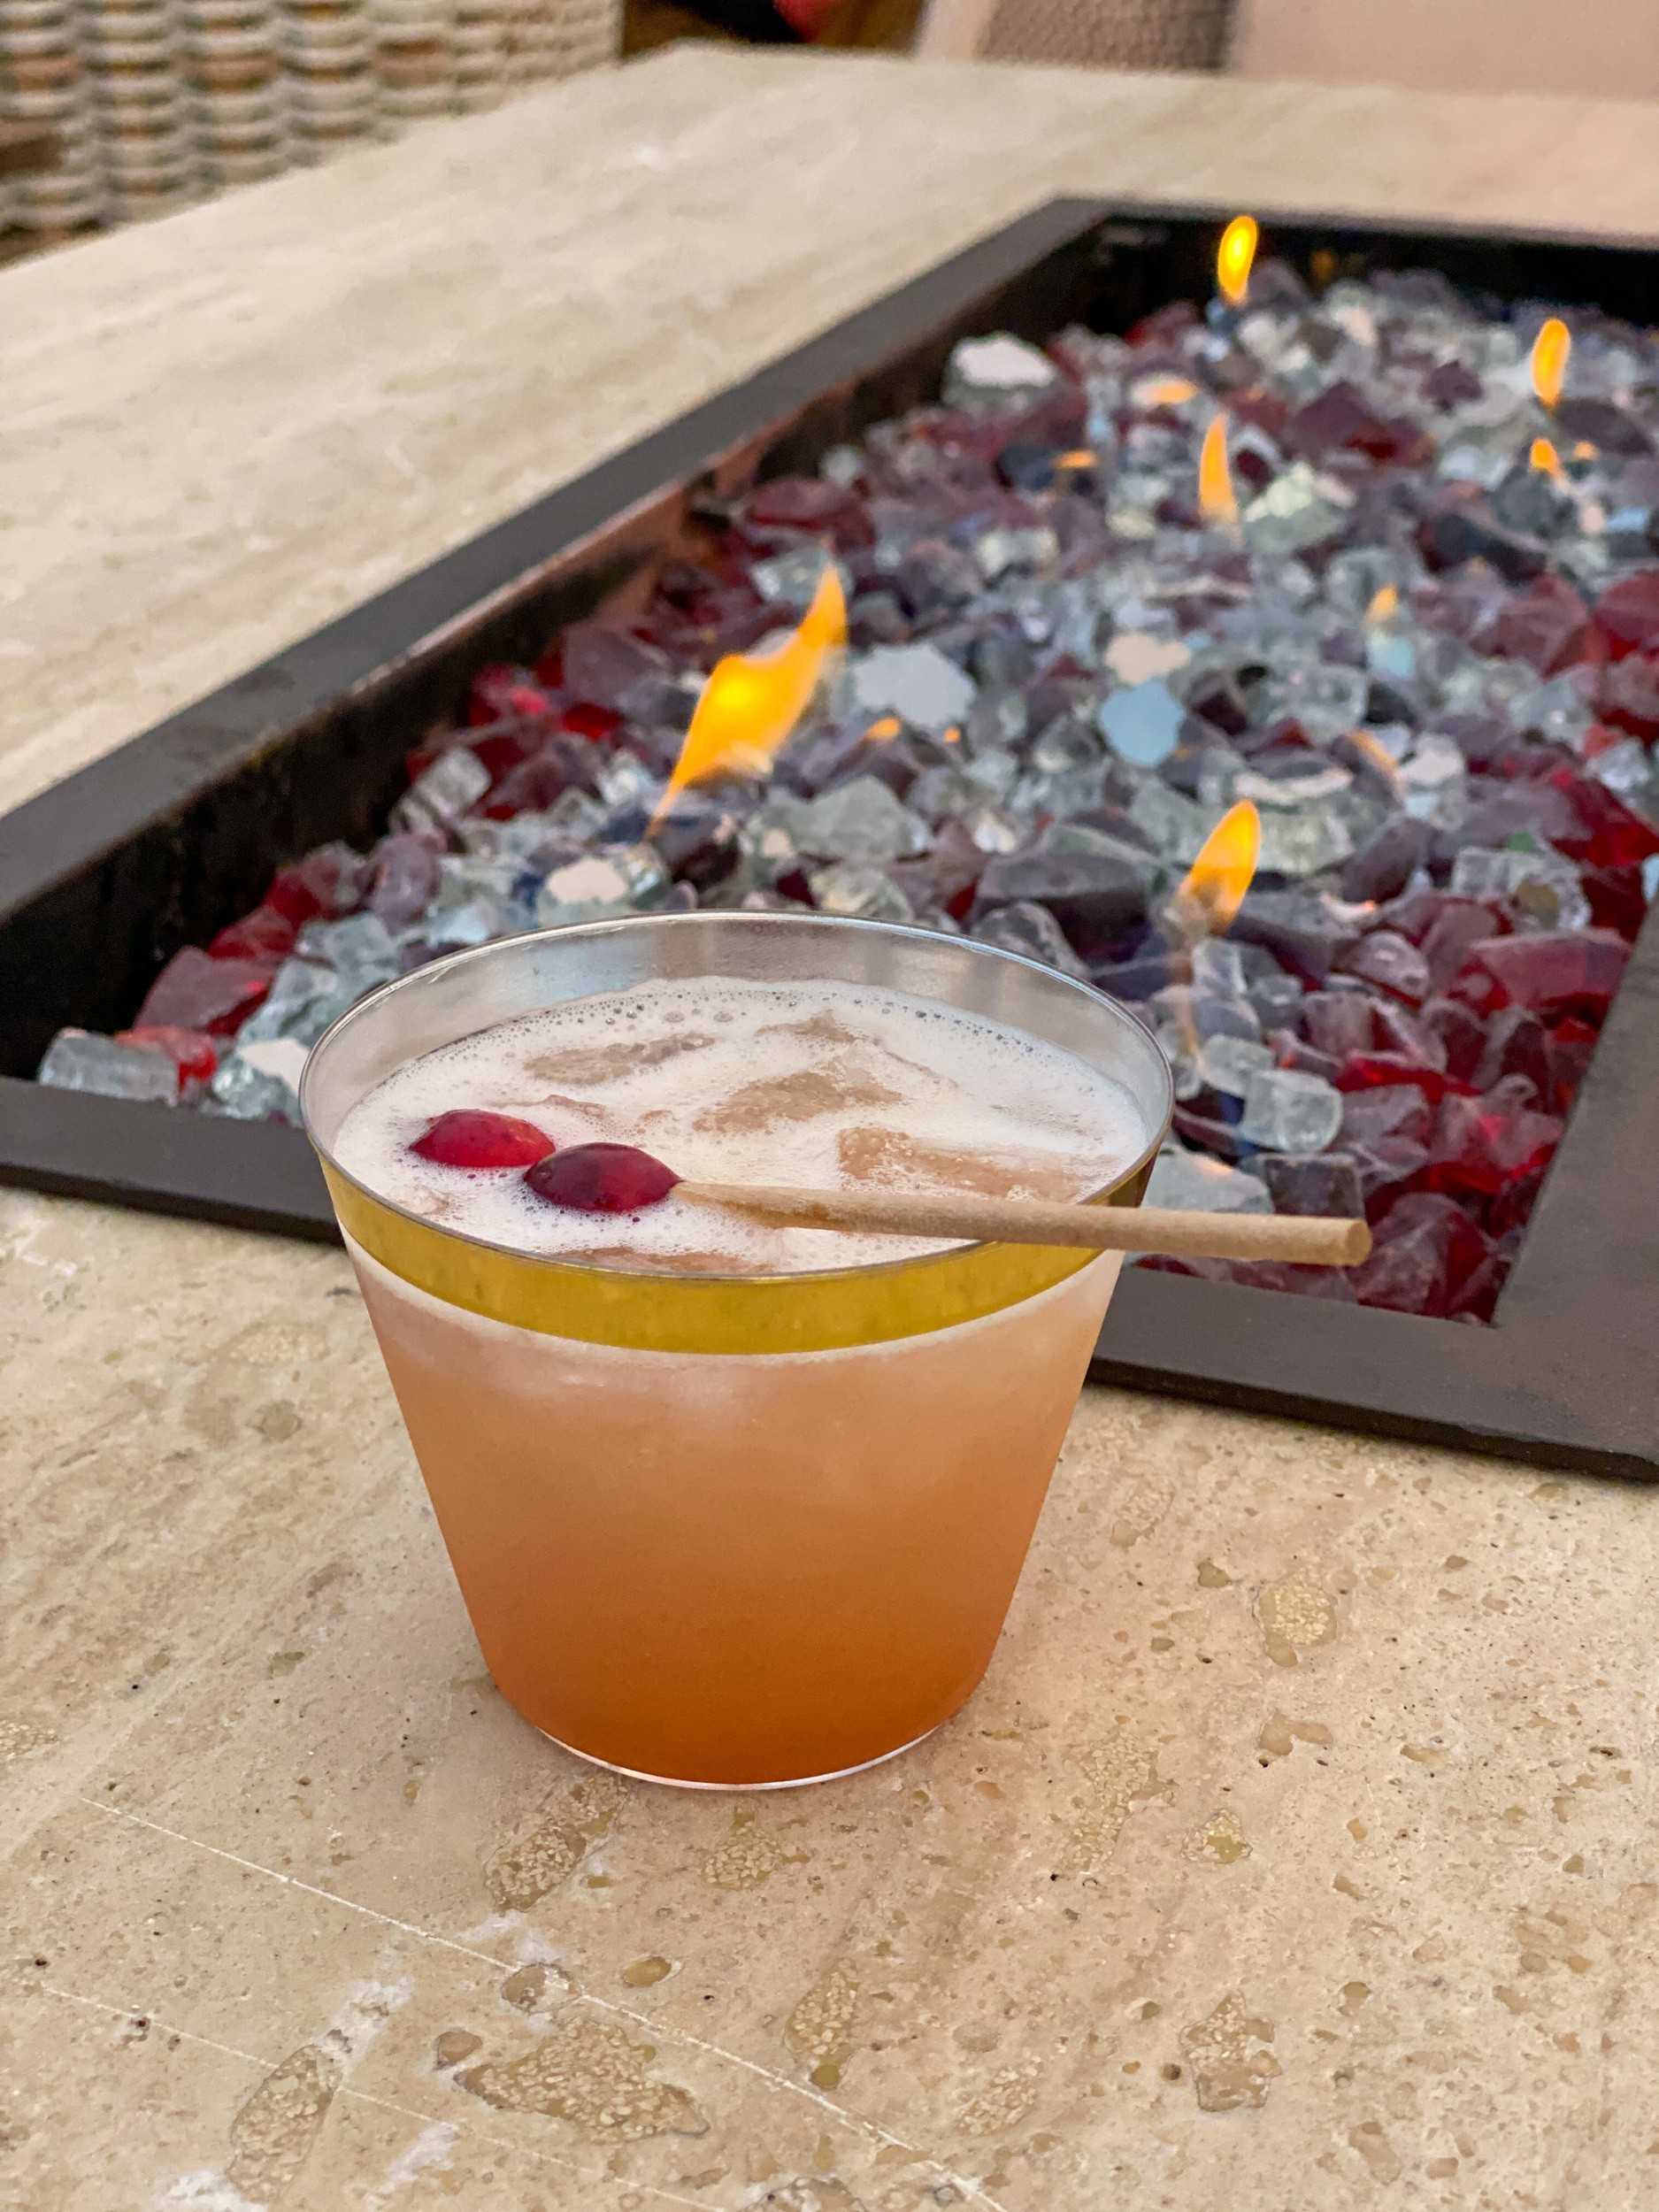 Good Tidings cocktail, made with vodka, Cointreau, citrus, cranberry, and All Spice Dram at Fairmont Scottsdale Princess